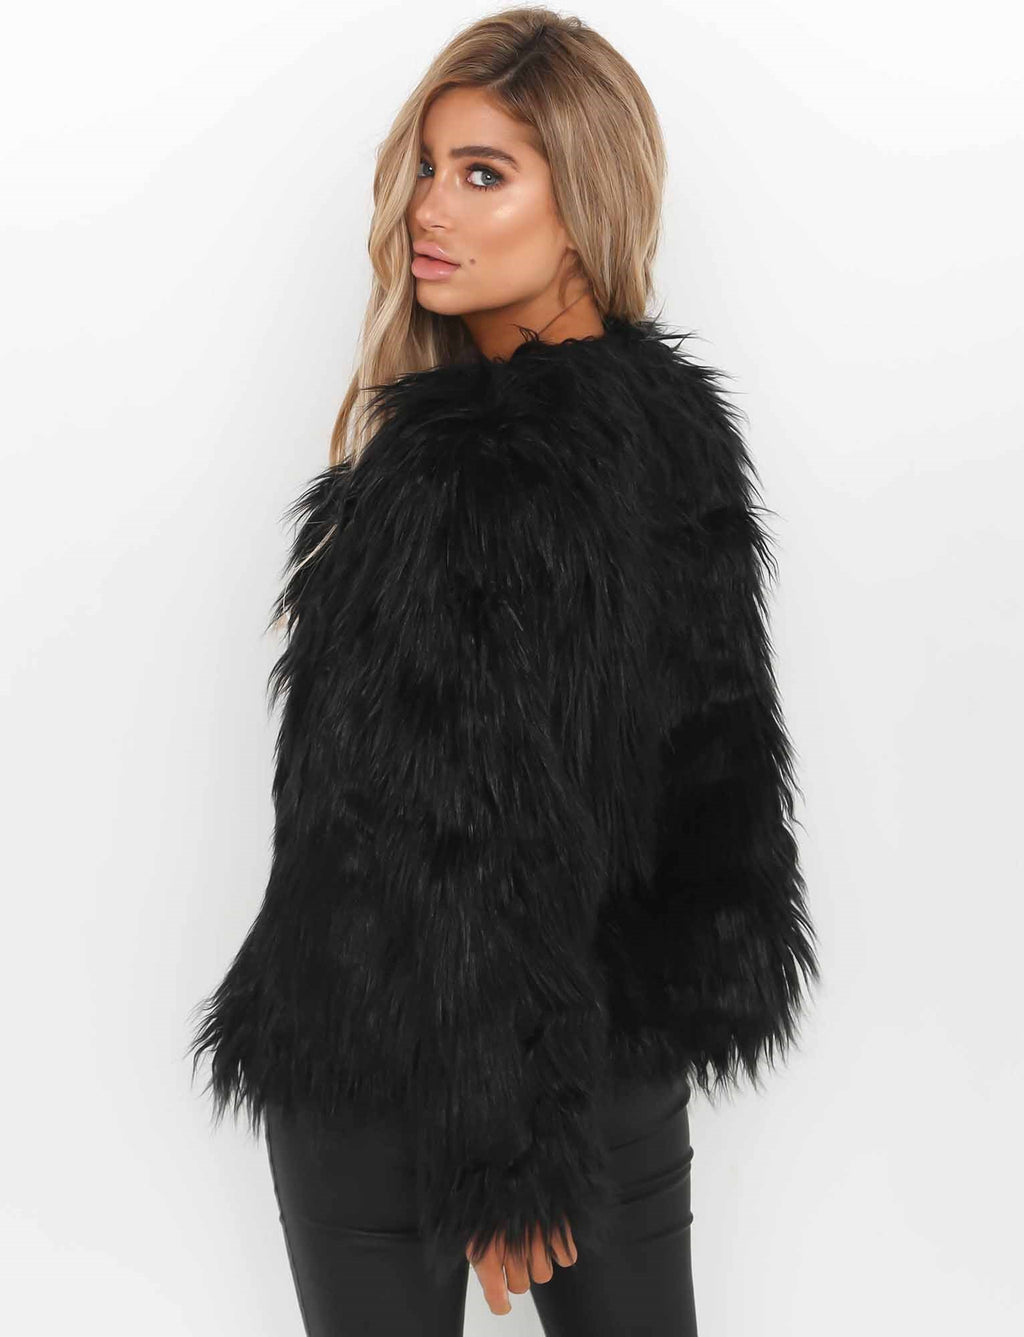 Find a great selection of women's fur coats & faux fur at pimpfilmzcq.cf Shop top brands like Trina Turk, Moose Knuckles & more. Free shipping & returns.